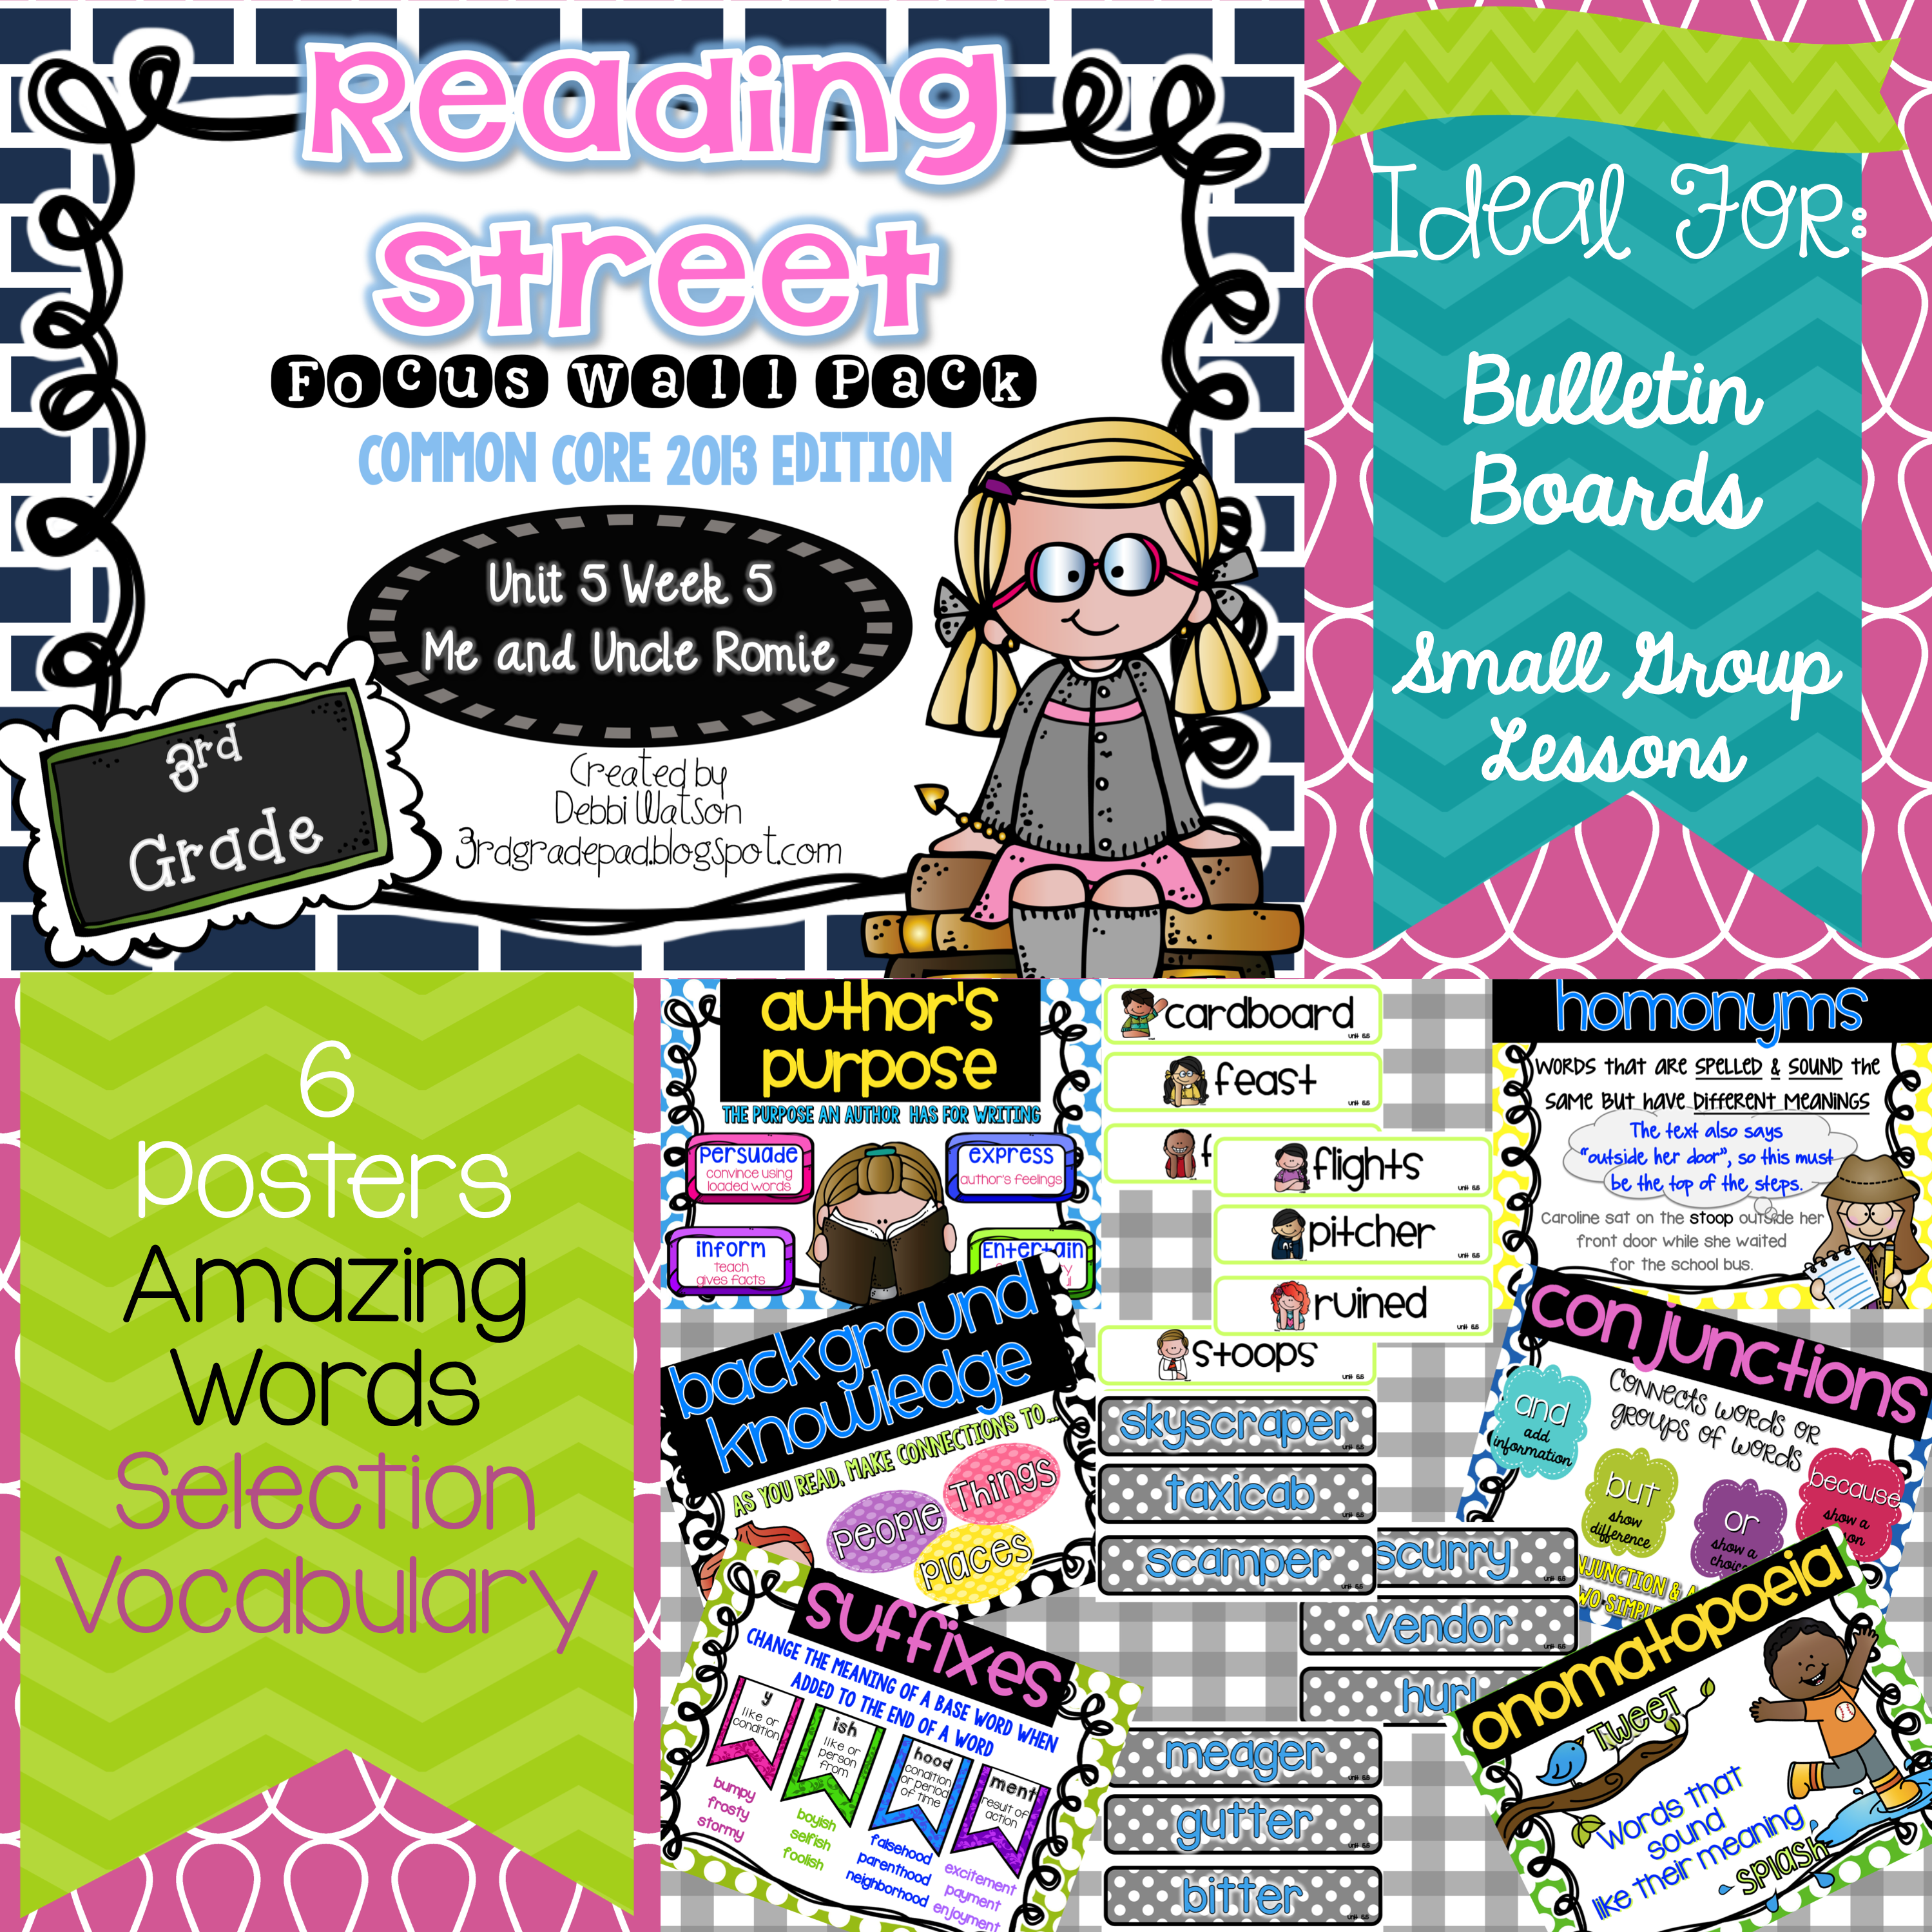 Reading Street 3rd Grade Focus Wall Posters Unit 5